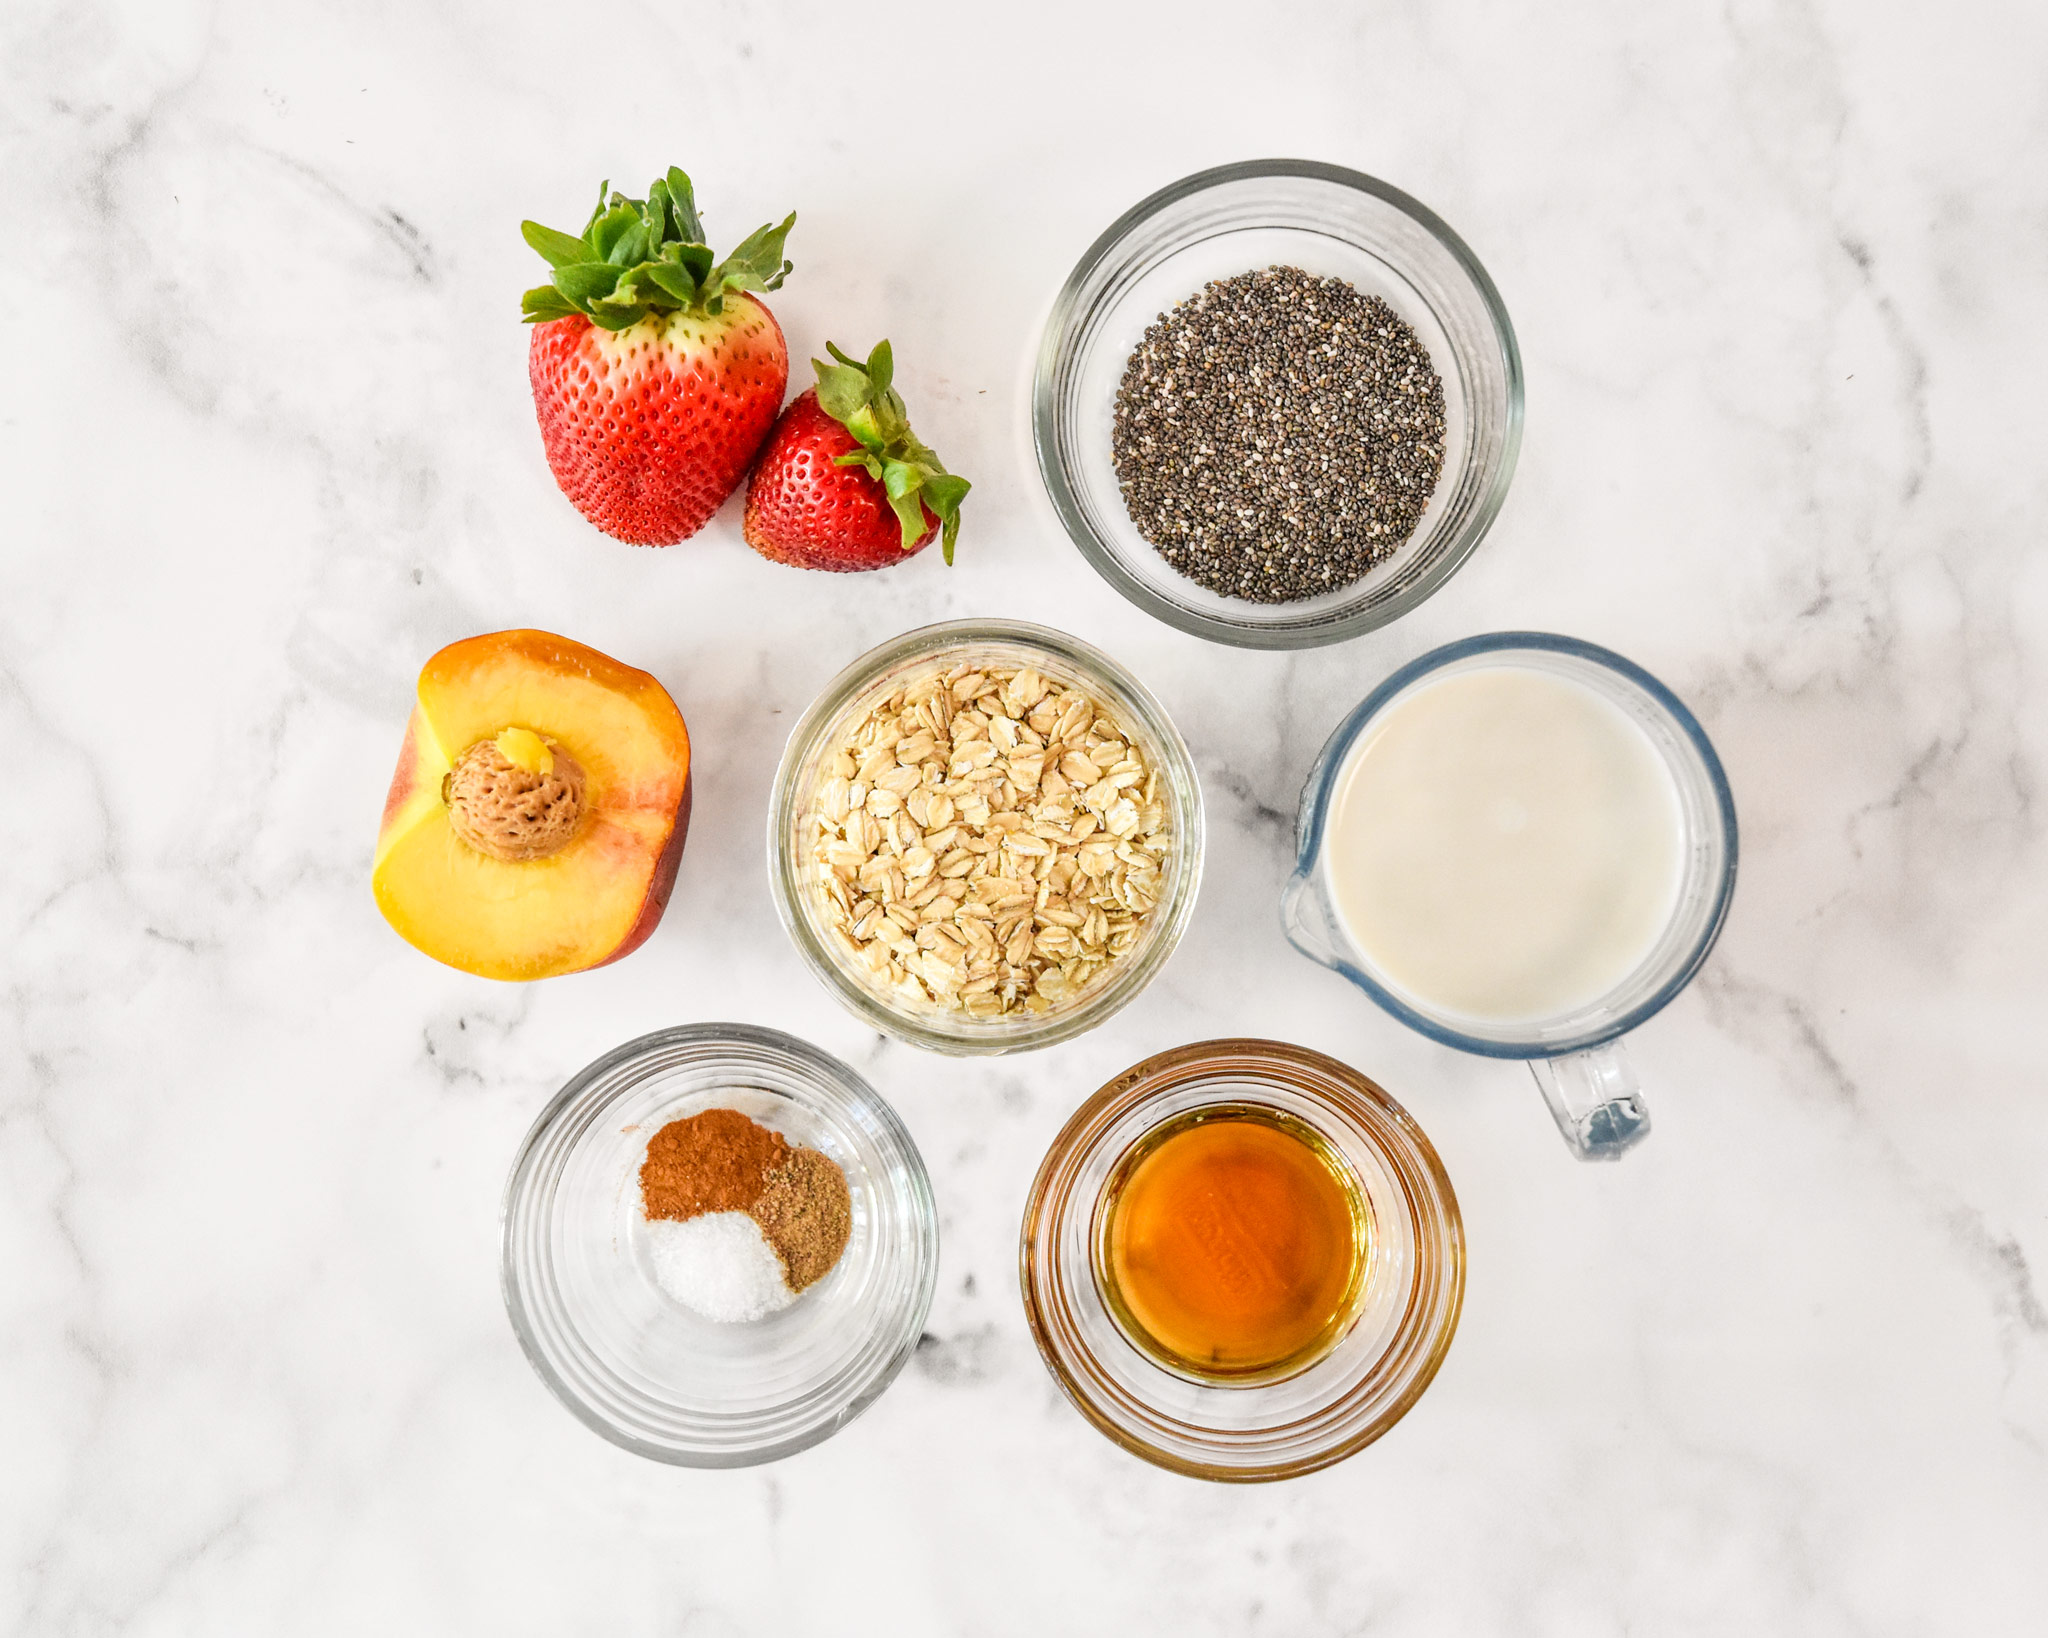 ingredients for one serving of strawberry peach overnight oats.